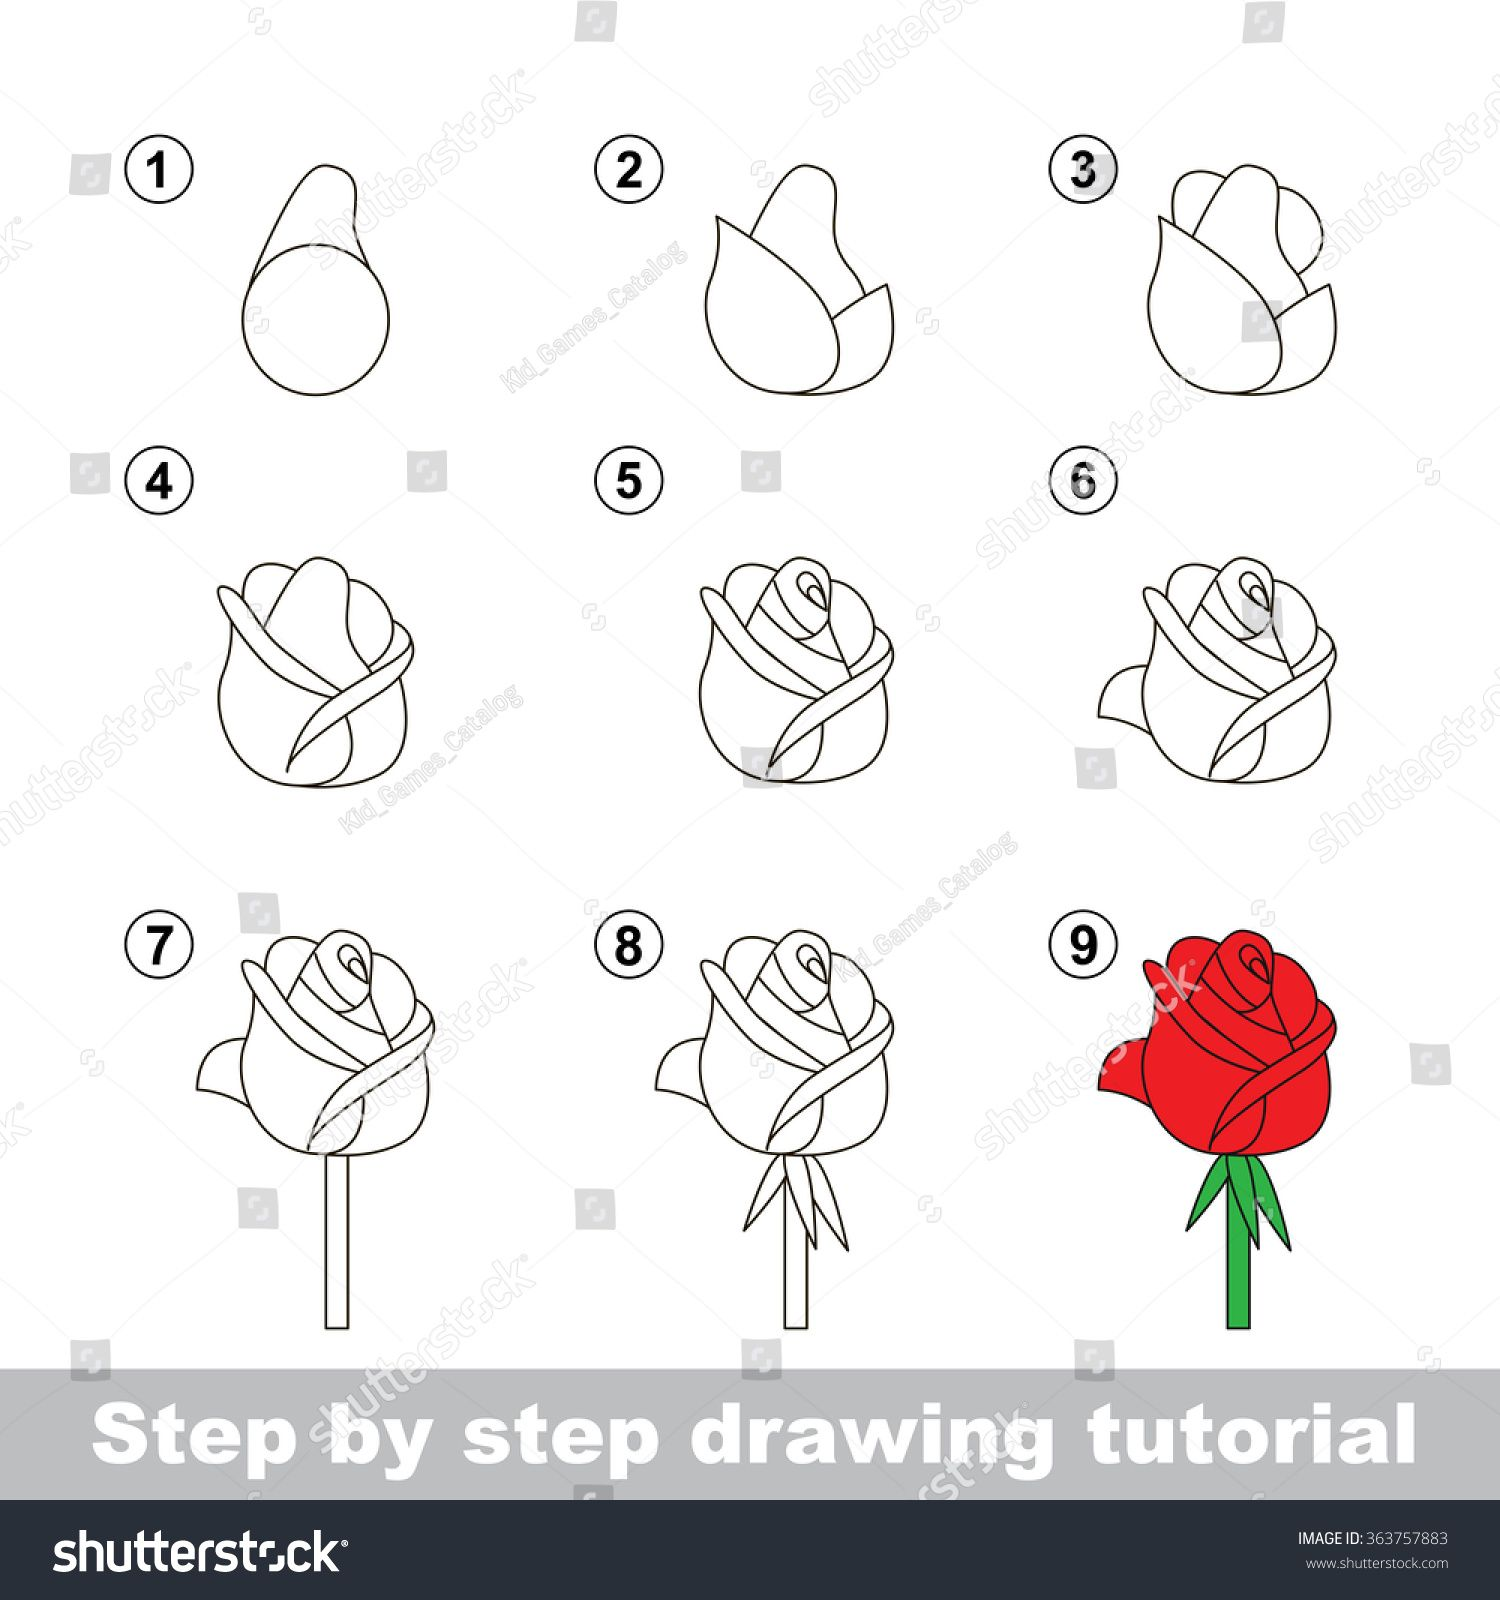 Step By Step Drawing Tutorial Vector Kid Game How To Draw